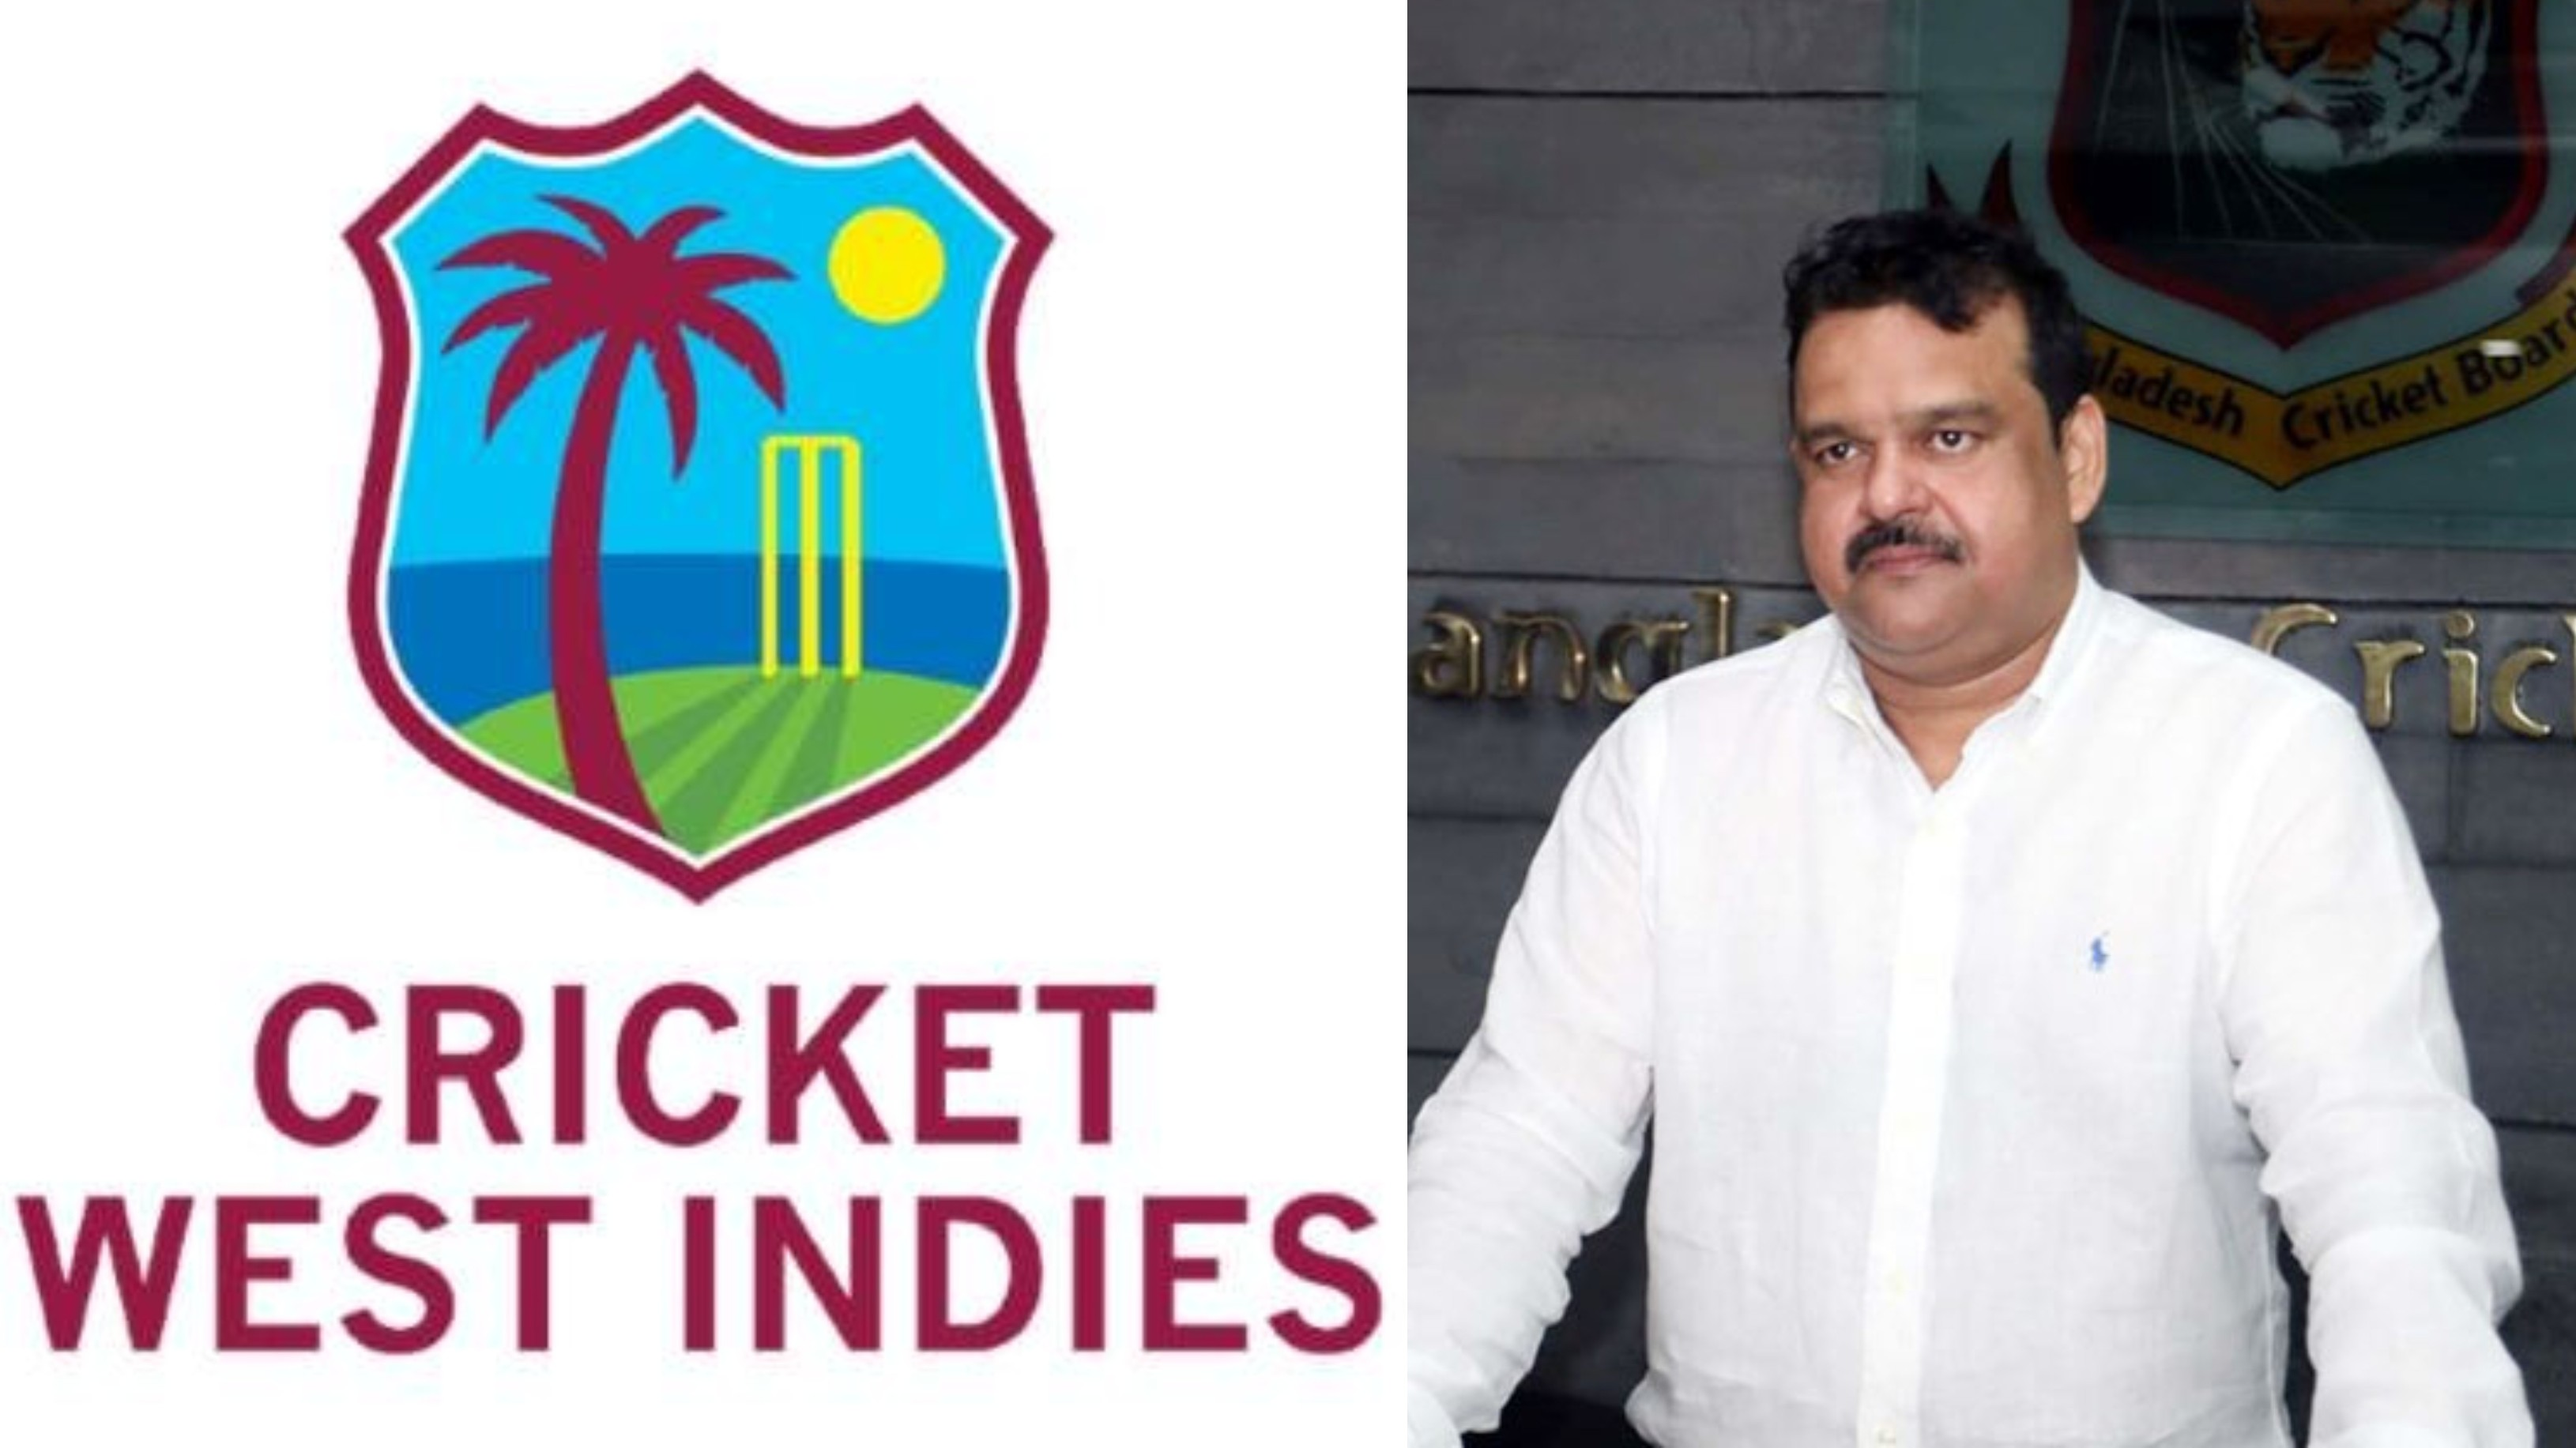 CWI team arrives in Dhaka to inspect COVID-19 arrangements, confirms BCB